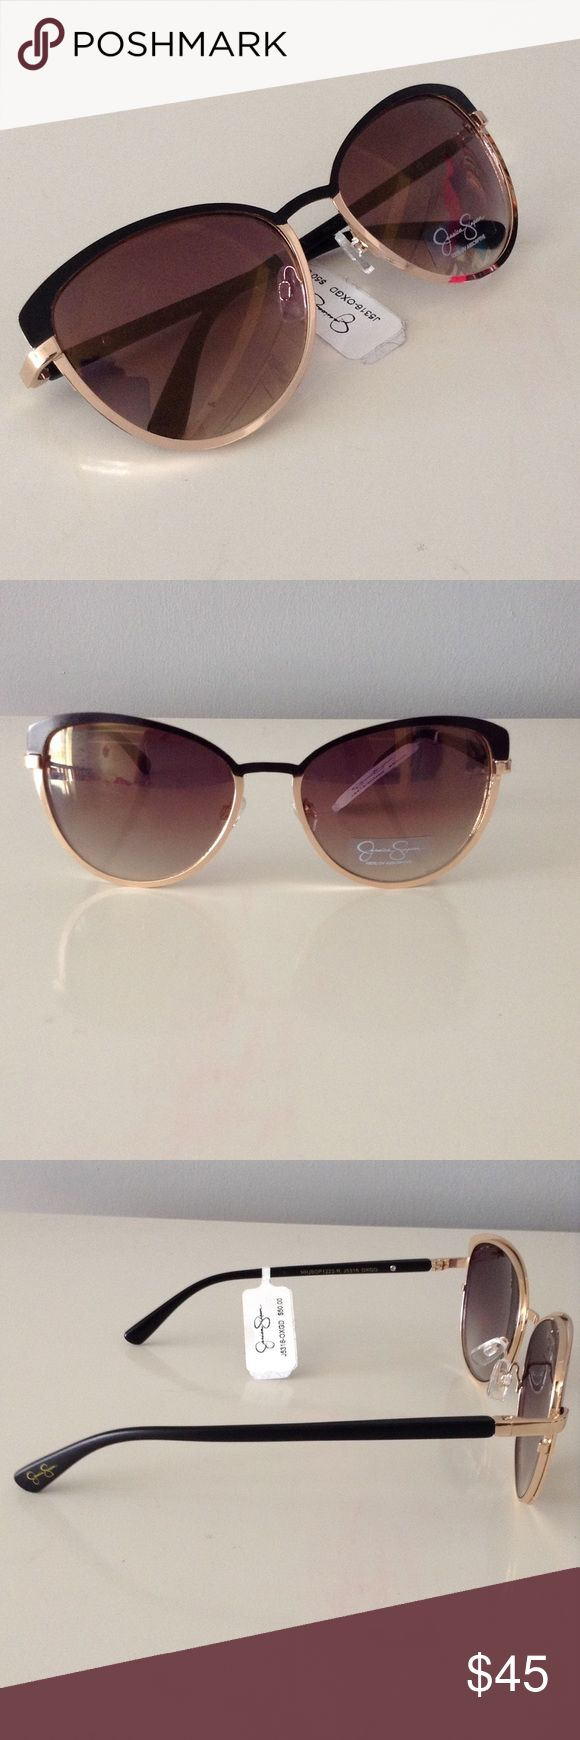 Chic Round Black & Gold Sunglasses New Jessica Simpson Accessories Sunglasses